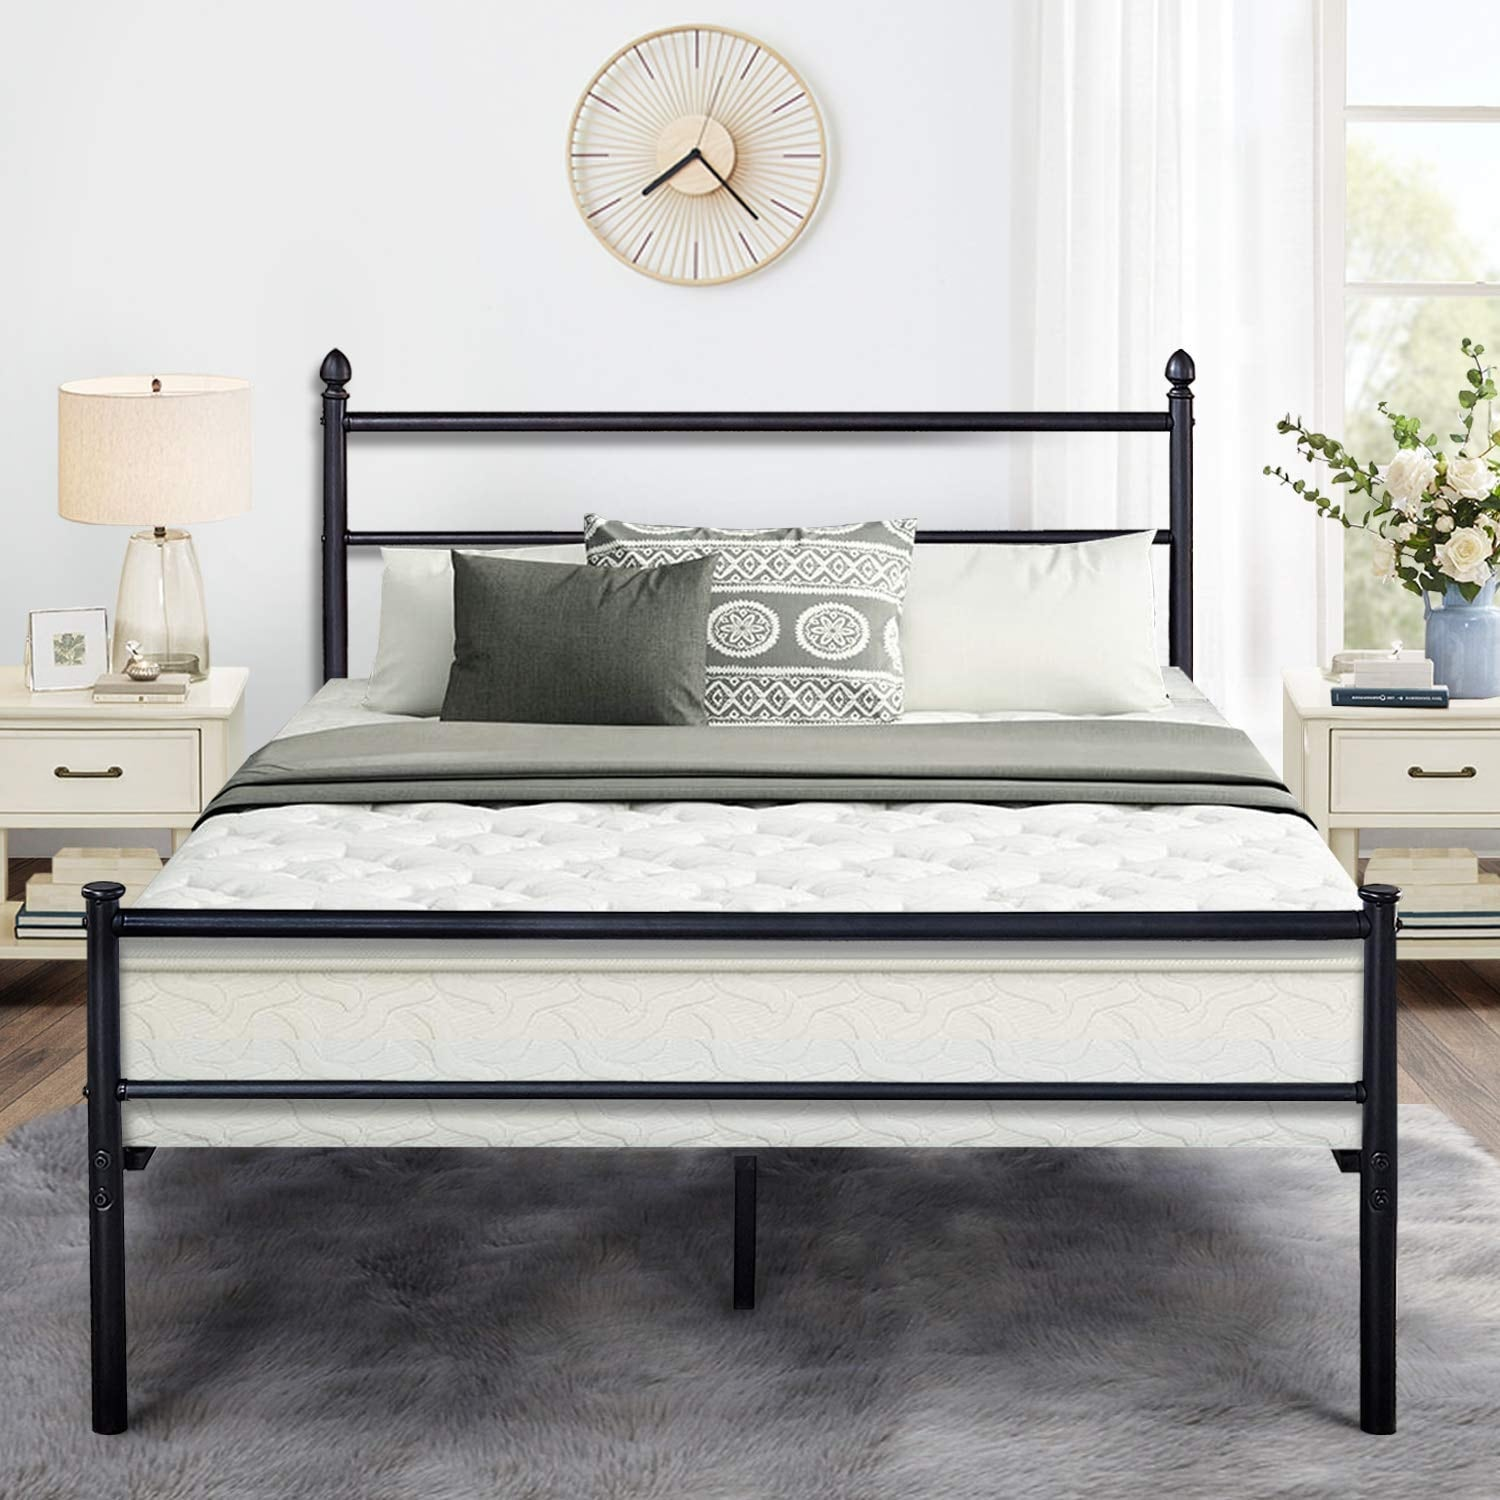 Black Classic Metal Bed Frames With Simple Headboard And Footboard By Vecelo Twin Full Queen 3 Size Options Overstock 28865051